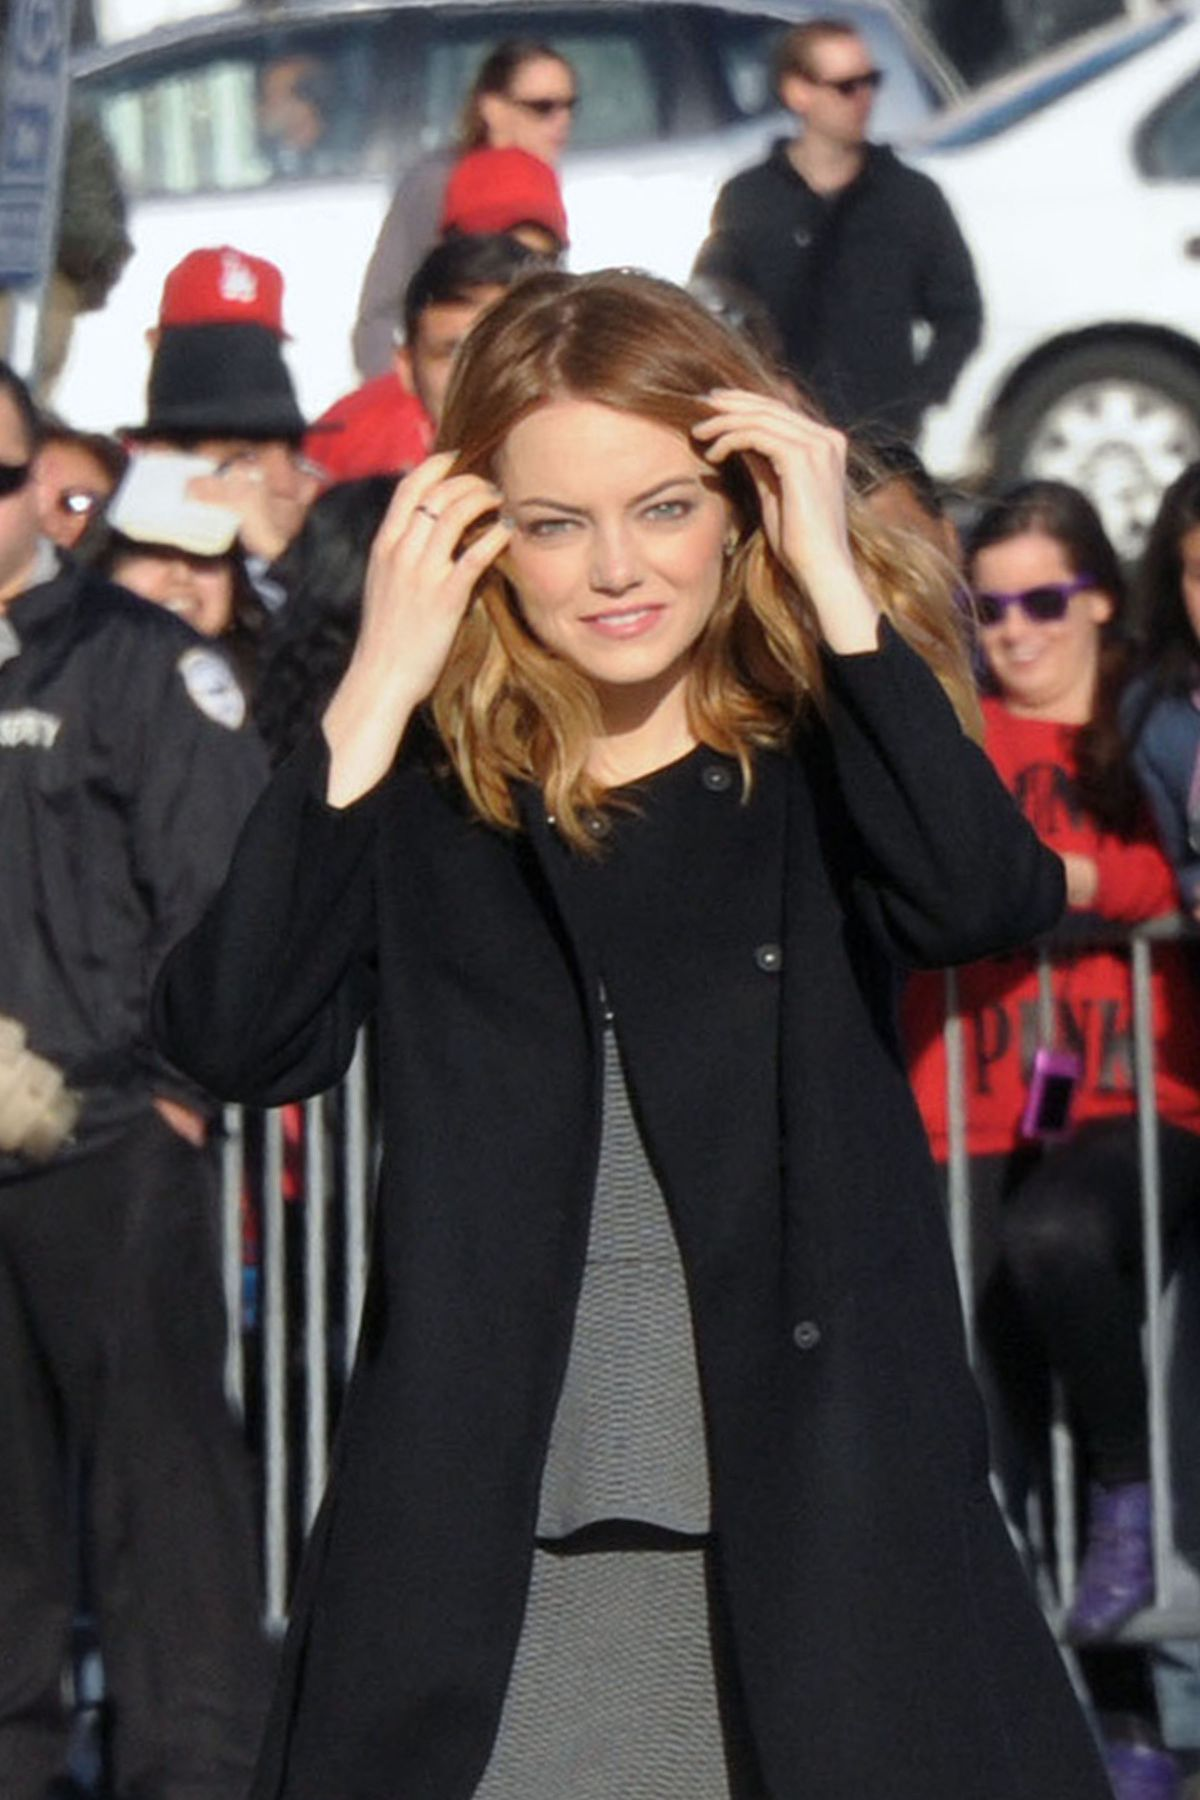 EMMA STONE Arrives at Jimmy Kimmel Live! in Hollywood